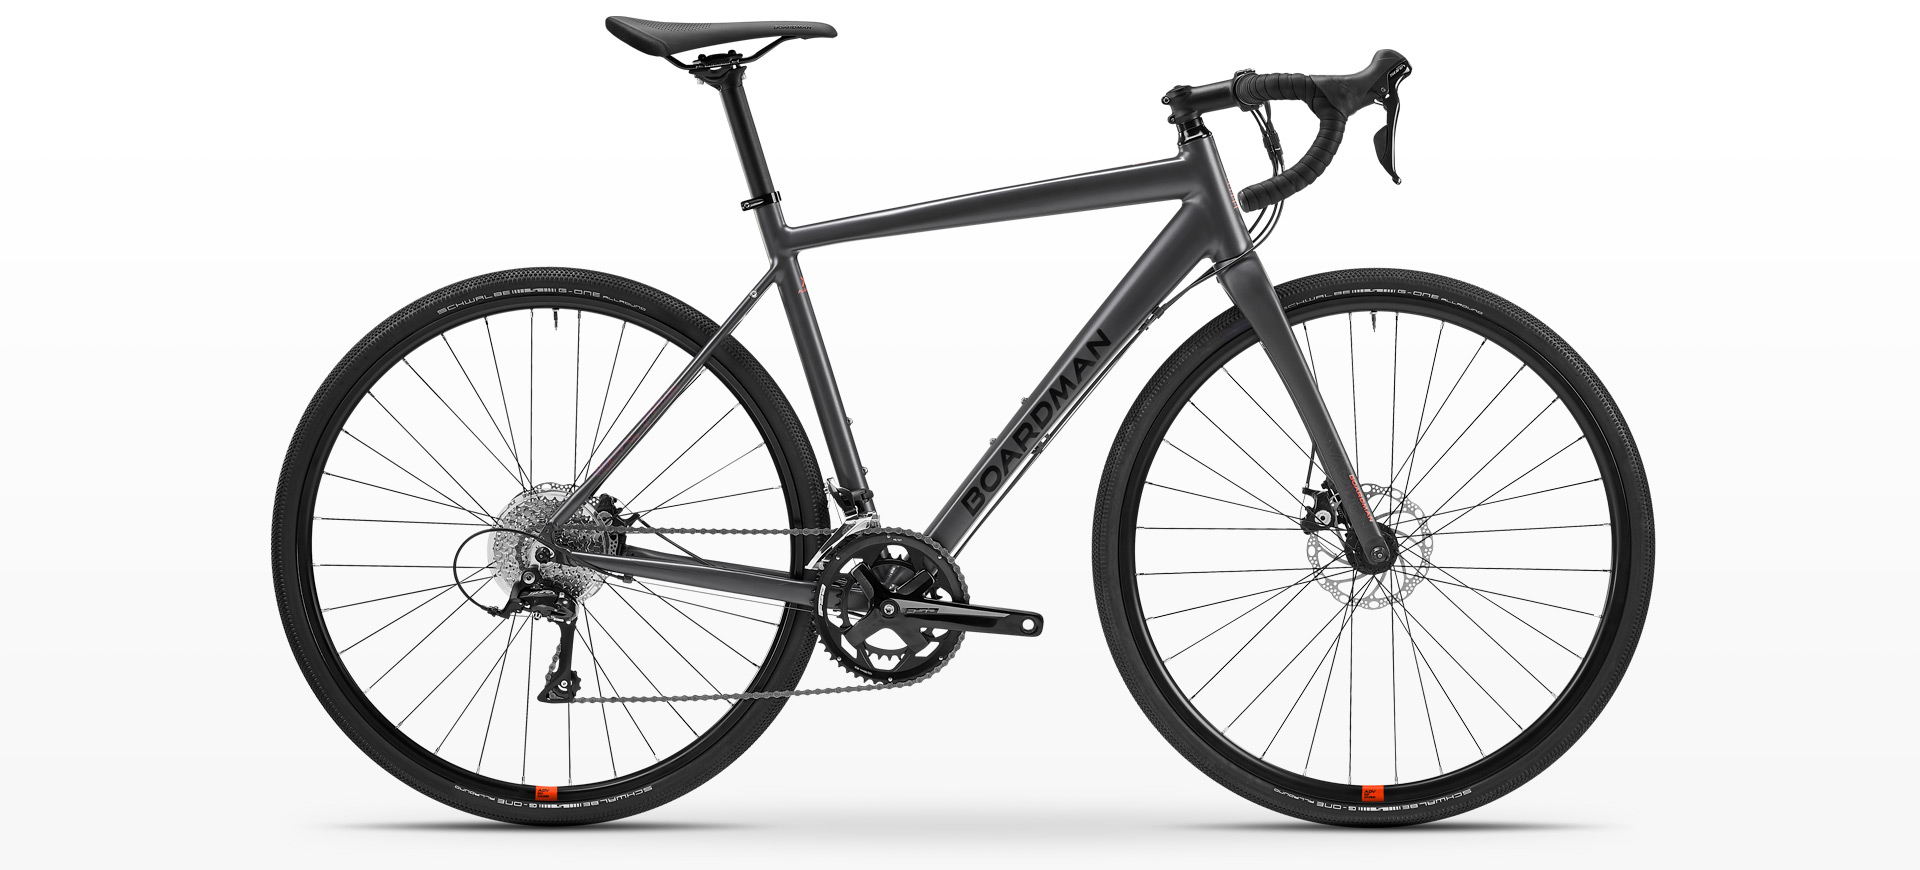 Boardman ADV 8.6 Gravel Adventure Bike Image